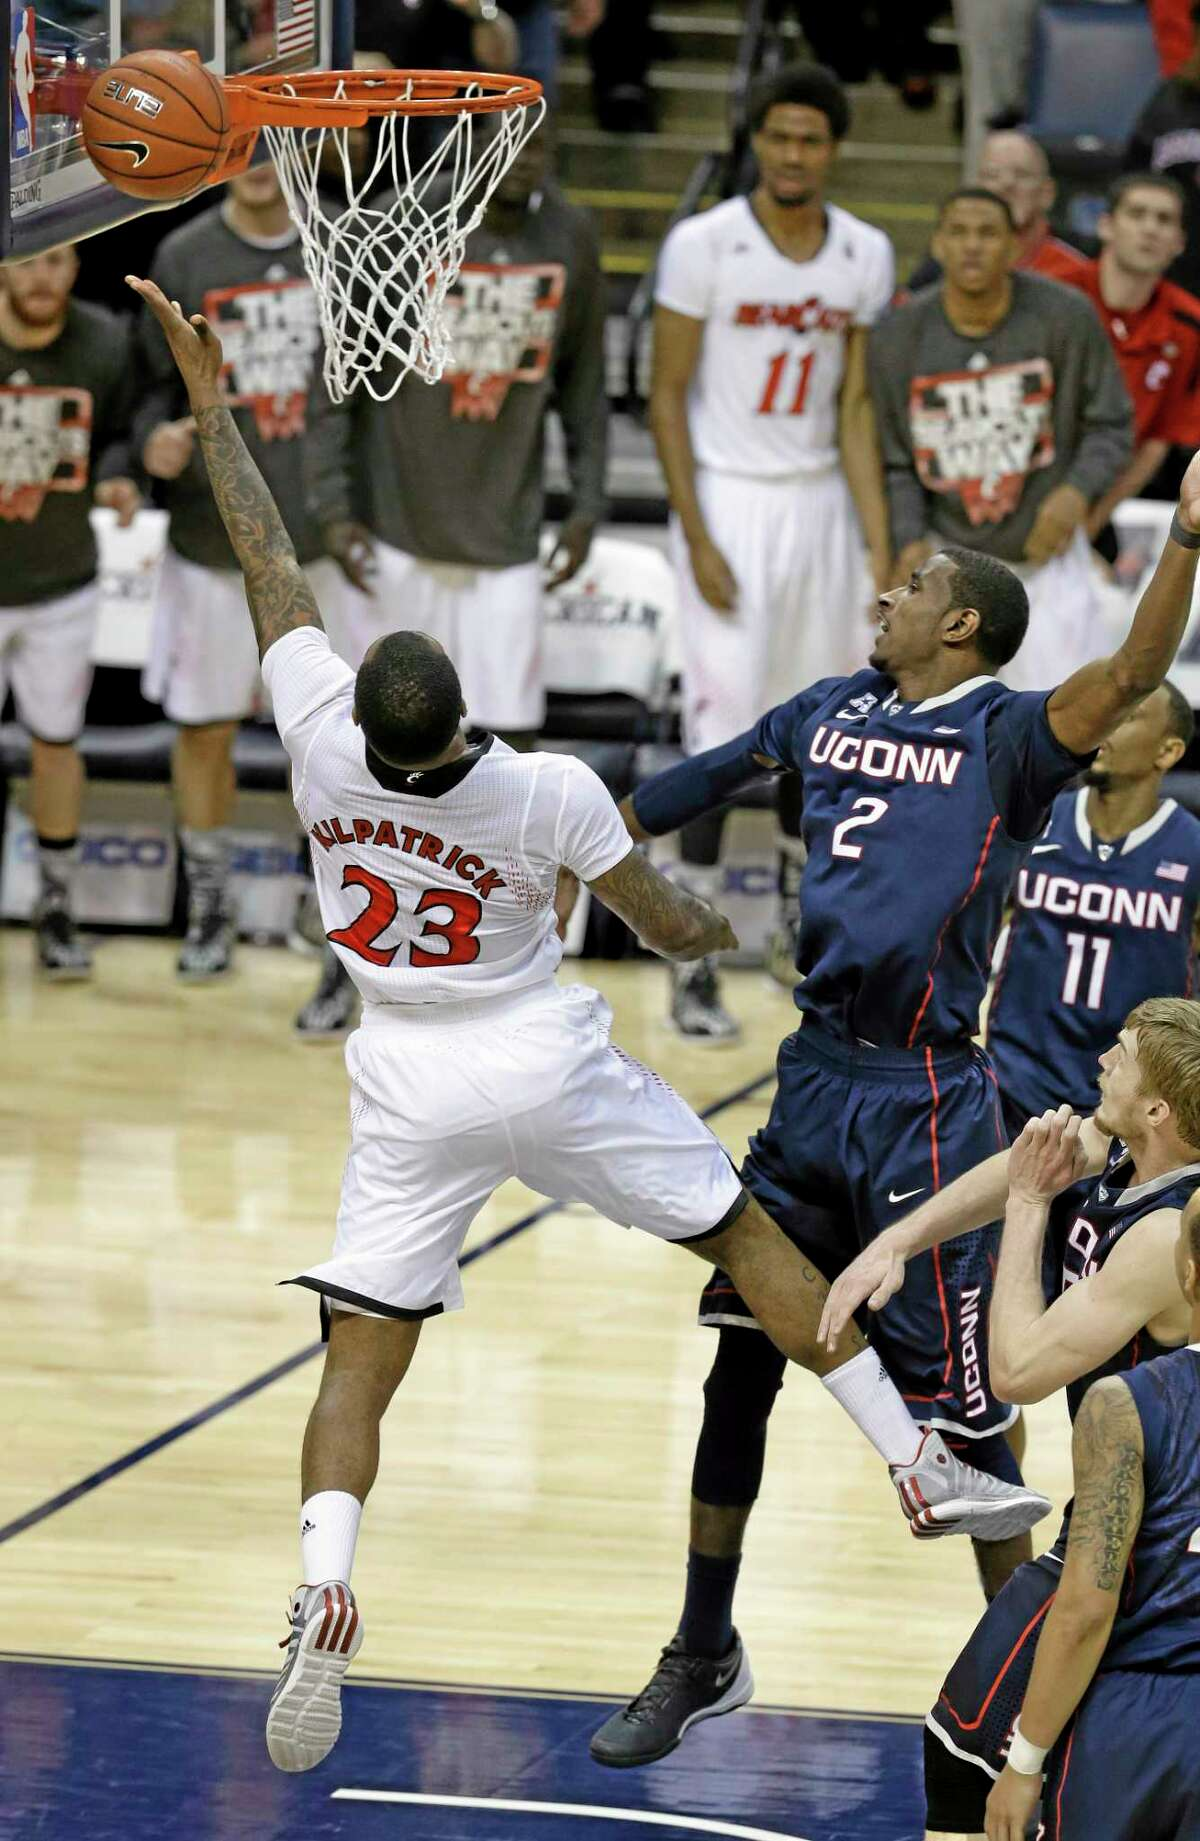 Cincinnati guard Sean Kilpatrick misses a layup as UConn forward DeAndre Daniels (2) defends on the final shot of the Huskies' 58-56 win in the semifinals of the American Athletic Conference tournament on Friday in Memphis, Tenn.